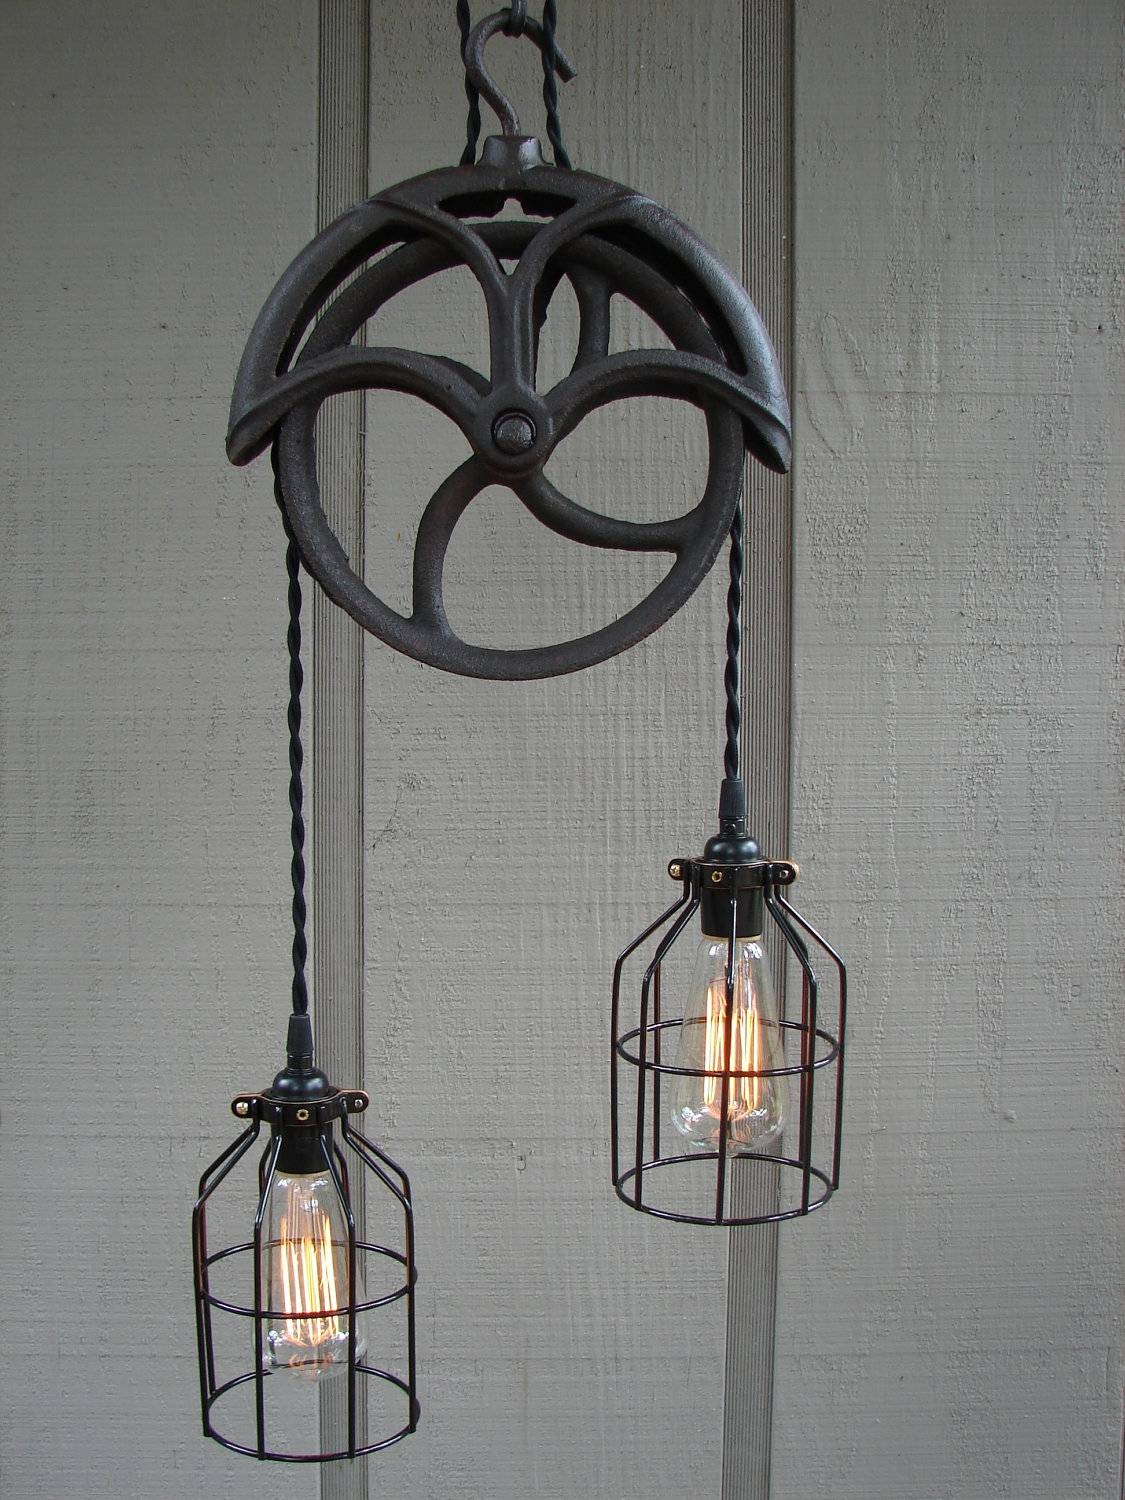 Pulley Pendant Light Fixtures - Baby-Exit in Pulley Lights Fixture (Image 13 of 15)